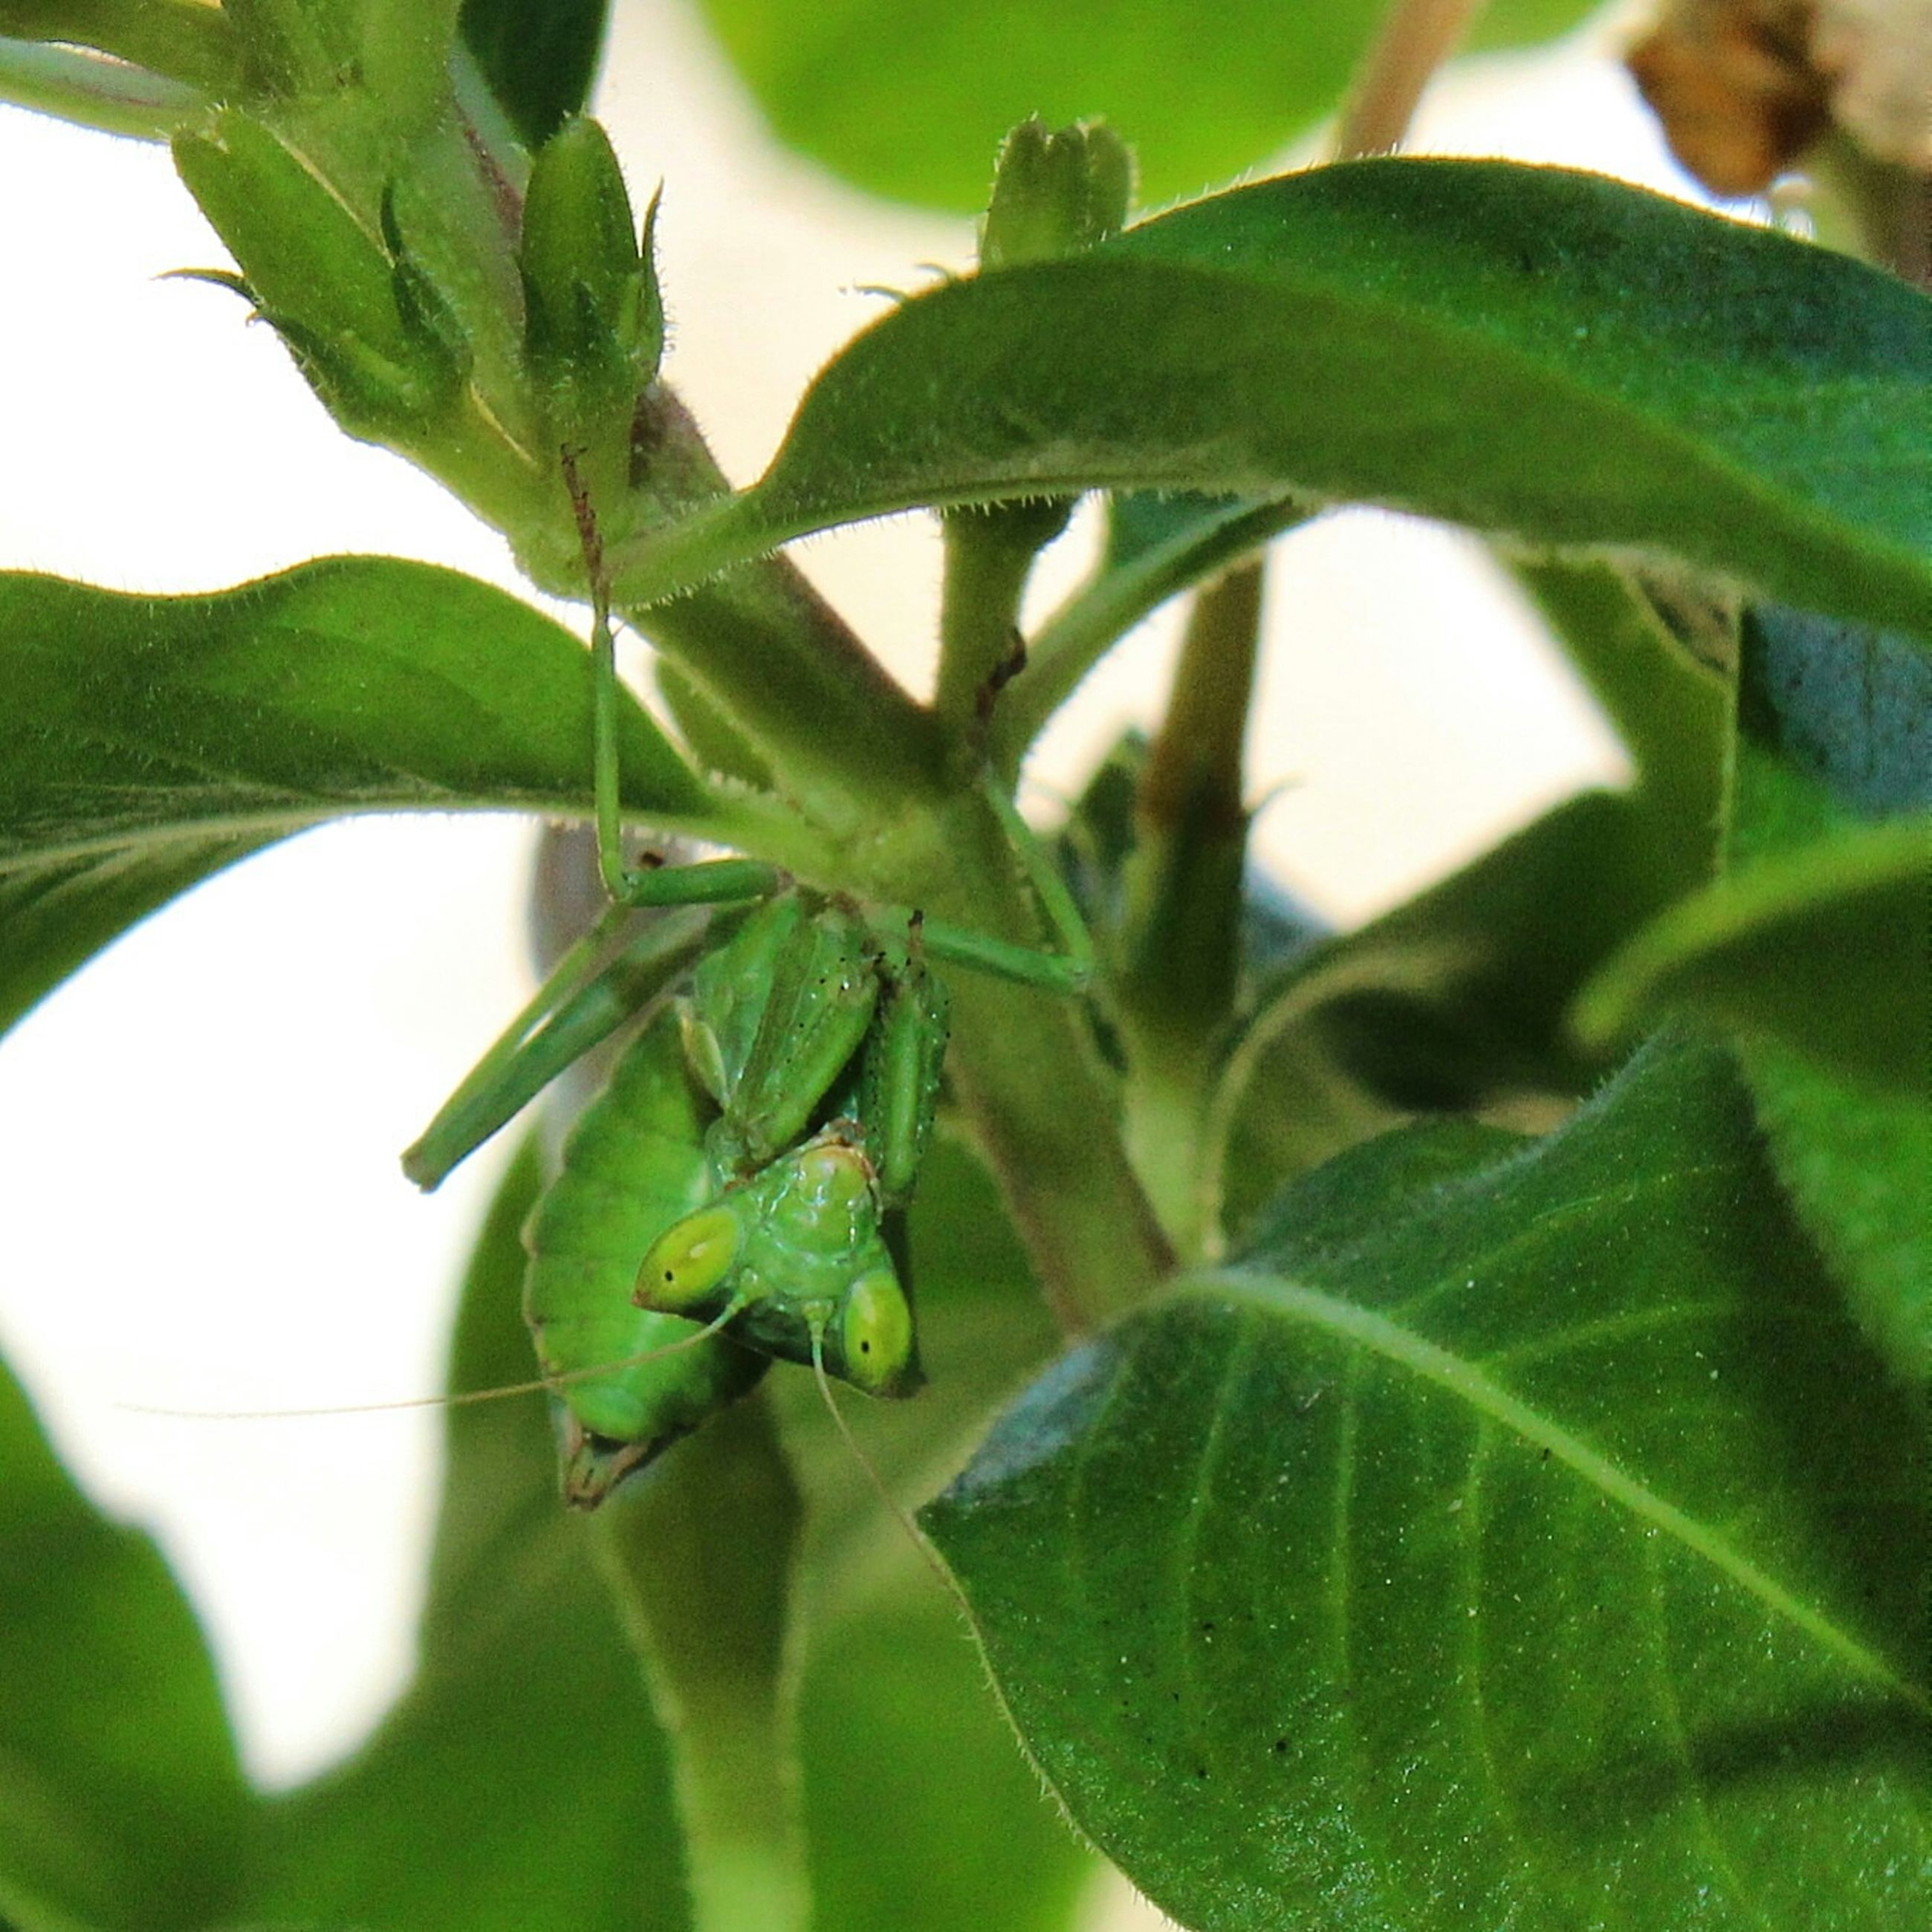 leaf, green color, close-up, plant, growth, nature, focus on foreground, green, selective focus, animal themes, insect, animals in the wild, one animal, leaves, leaf vein, wildlife, no people, day, branch, outdoors